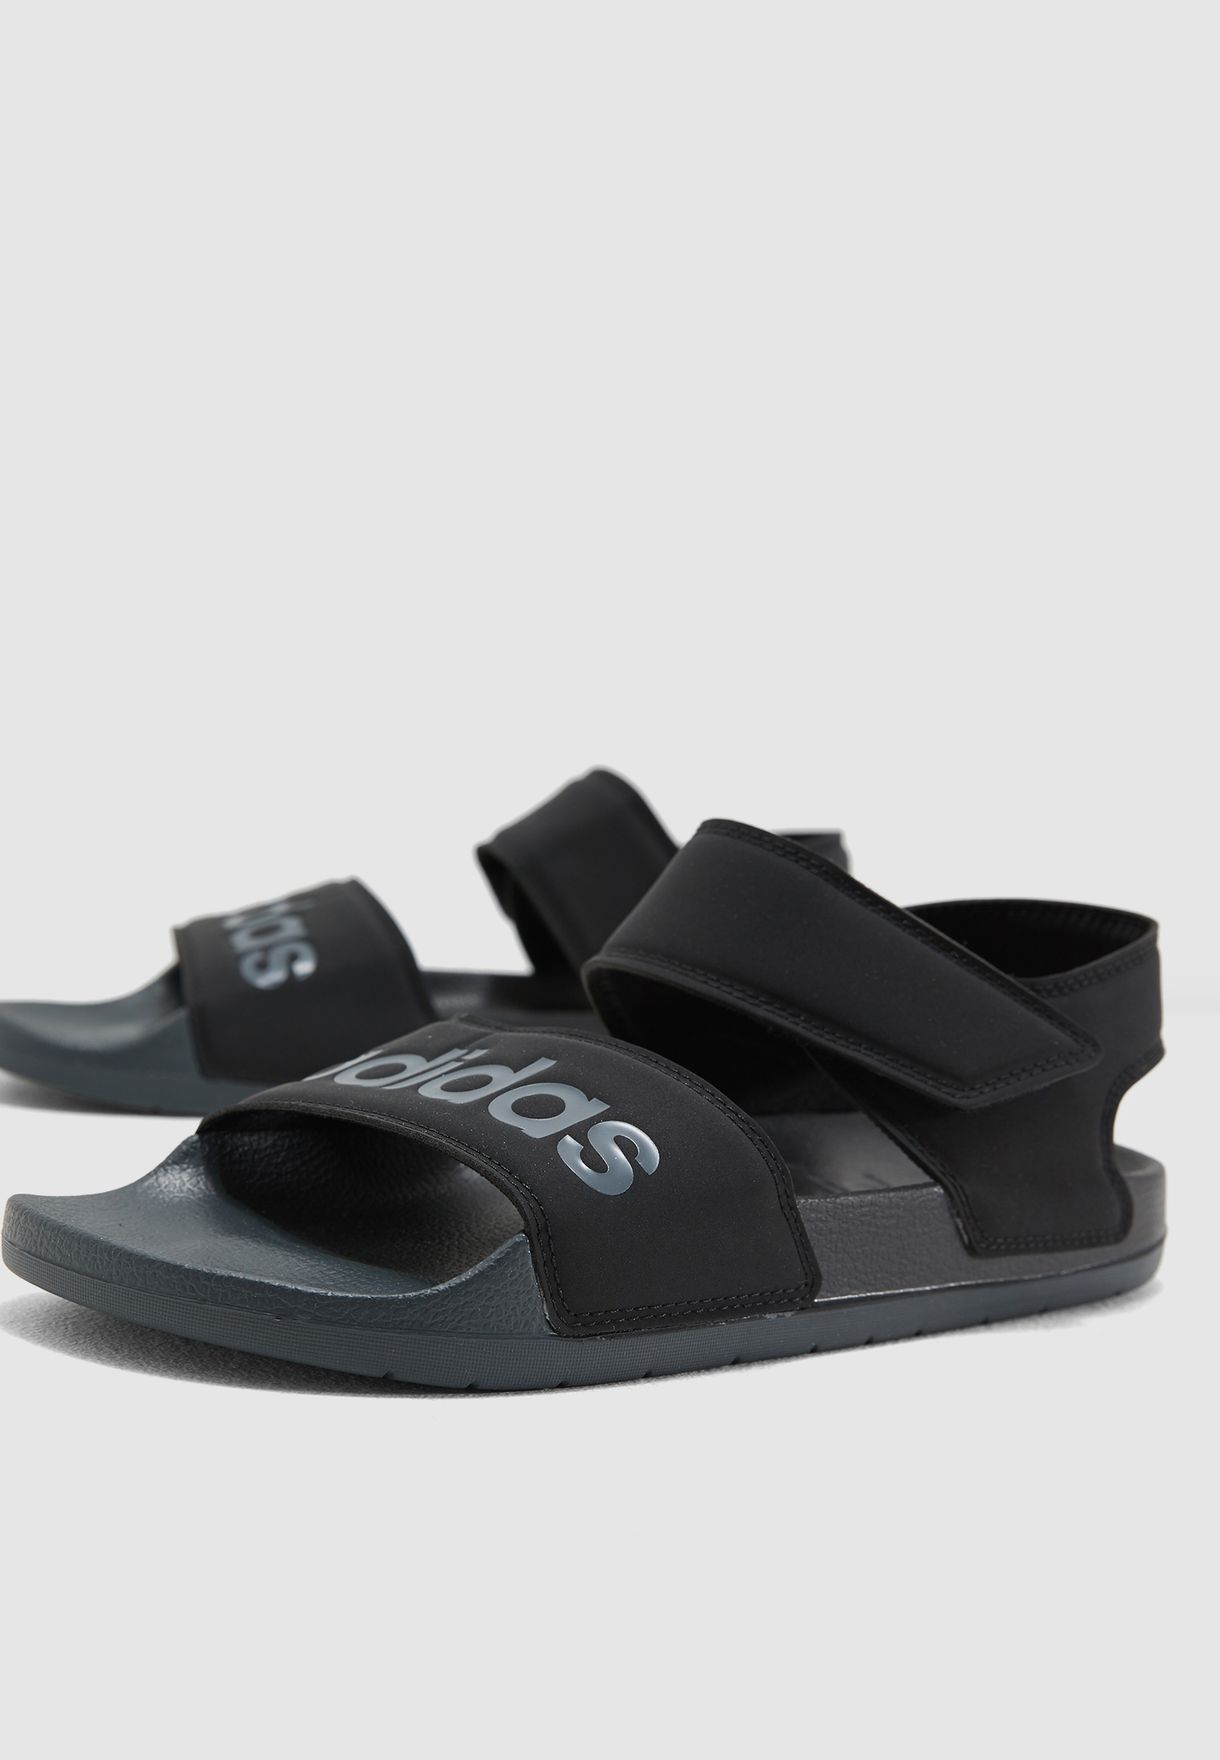 7c315ef93036 Shop adidas black Adilette Slides F35417 for Men in UAE - 14448SH96XVP